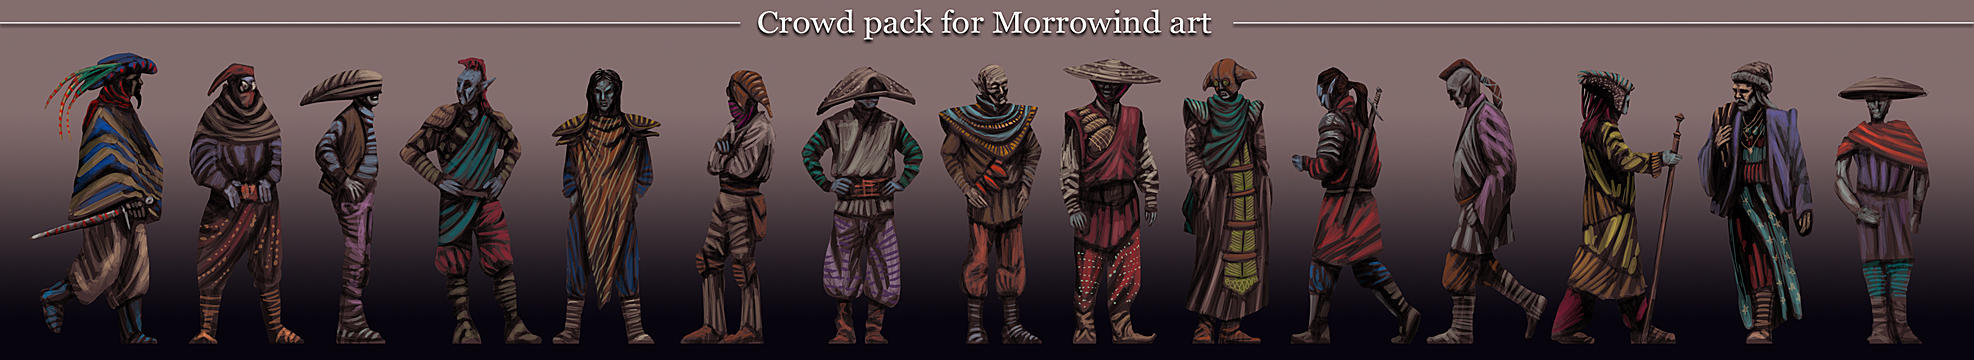 Morrowind persons pack by Lelek1980